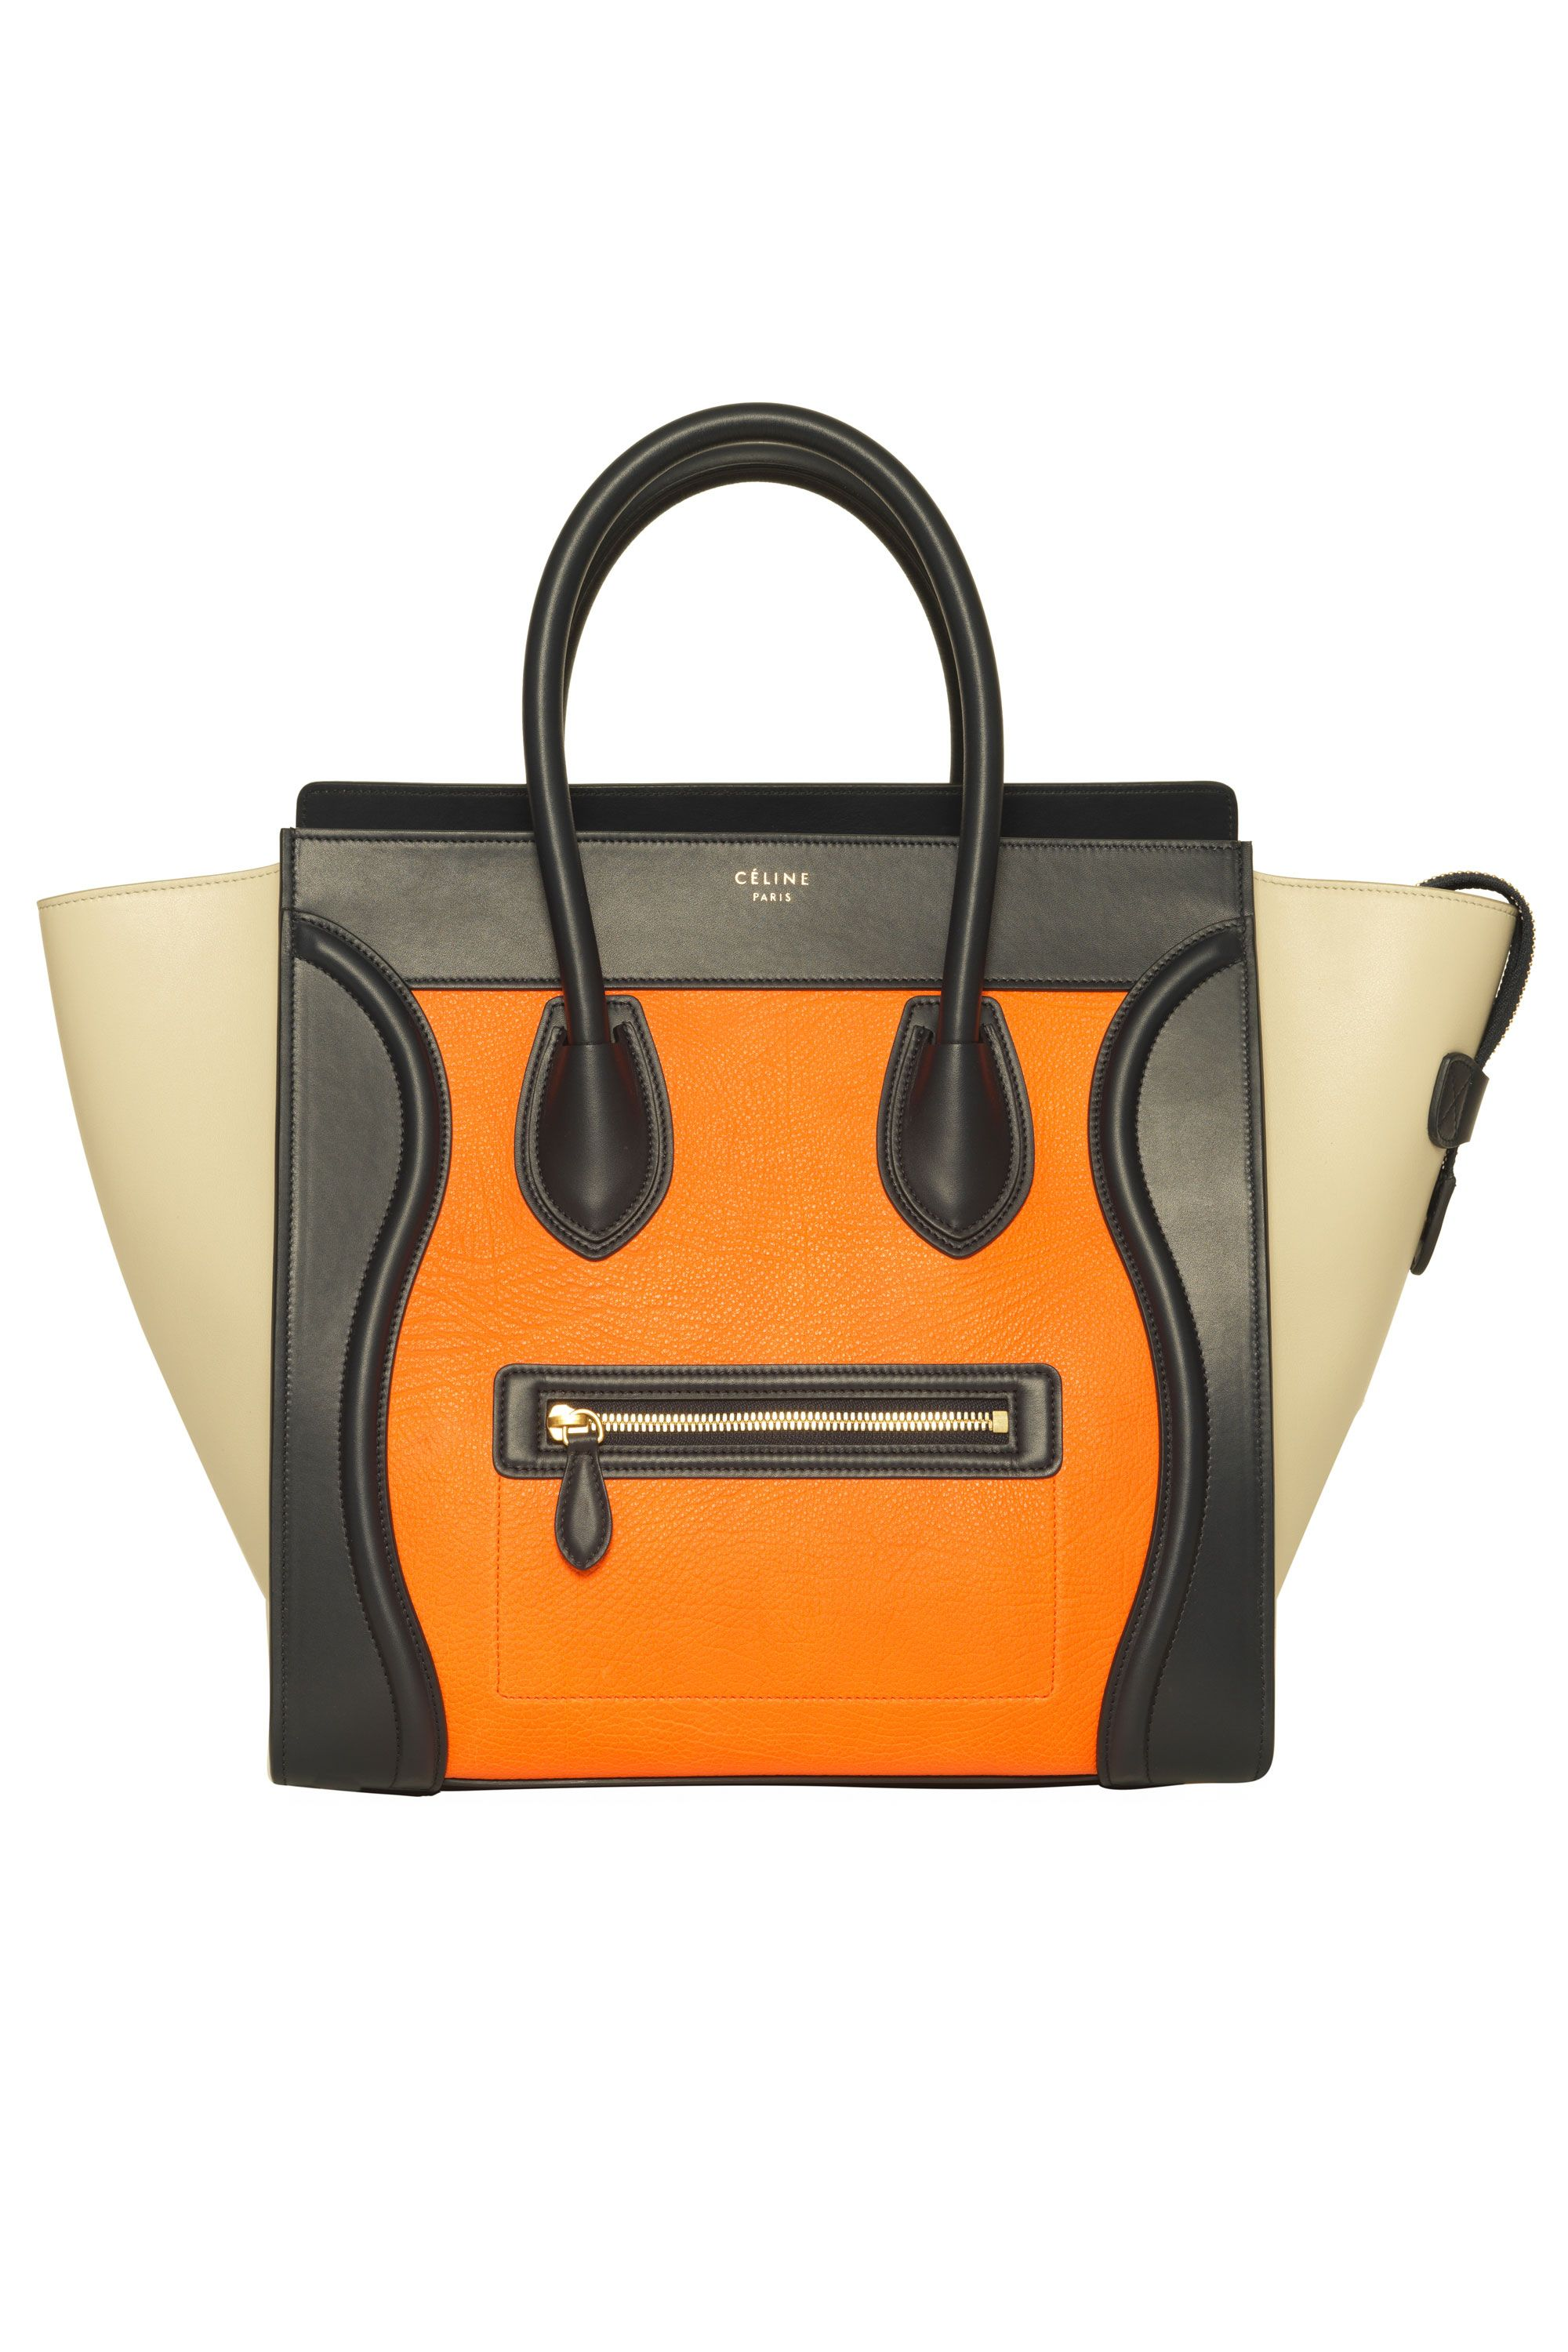 best bags 2015 - the bags to own in 2015